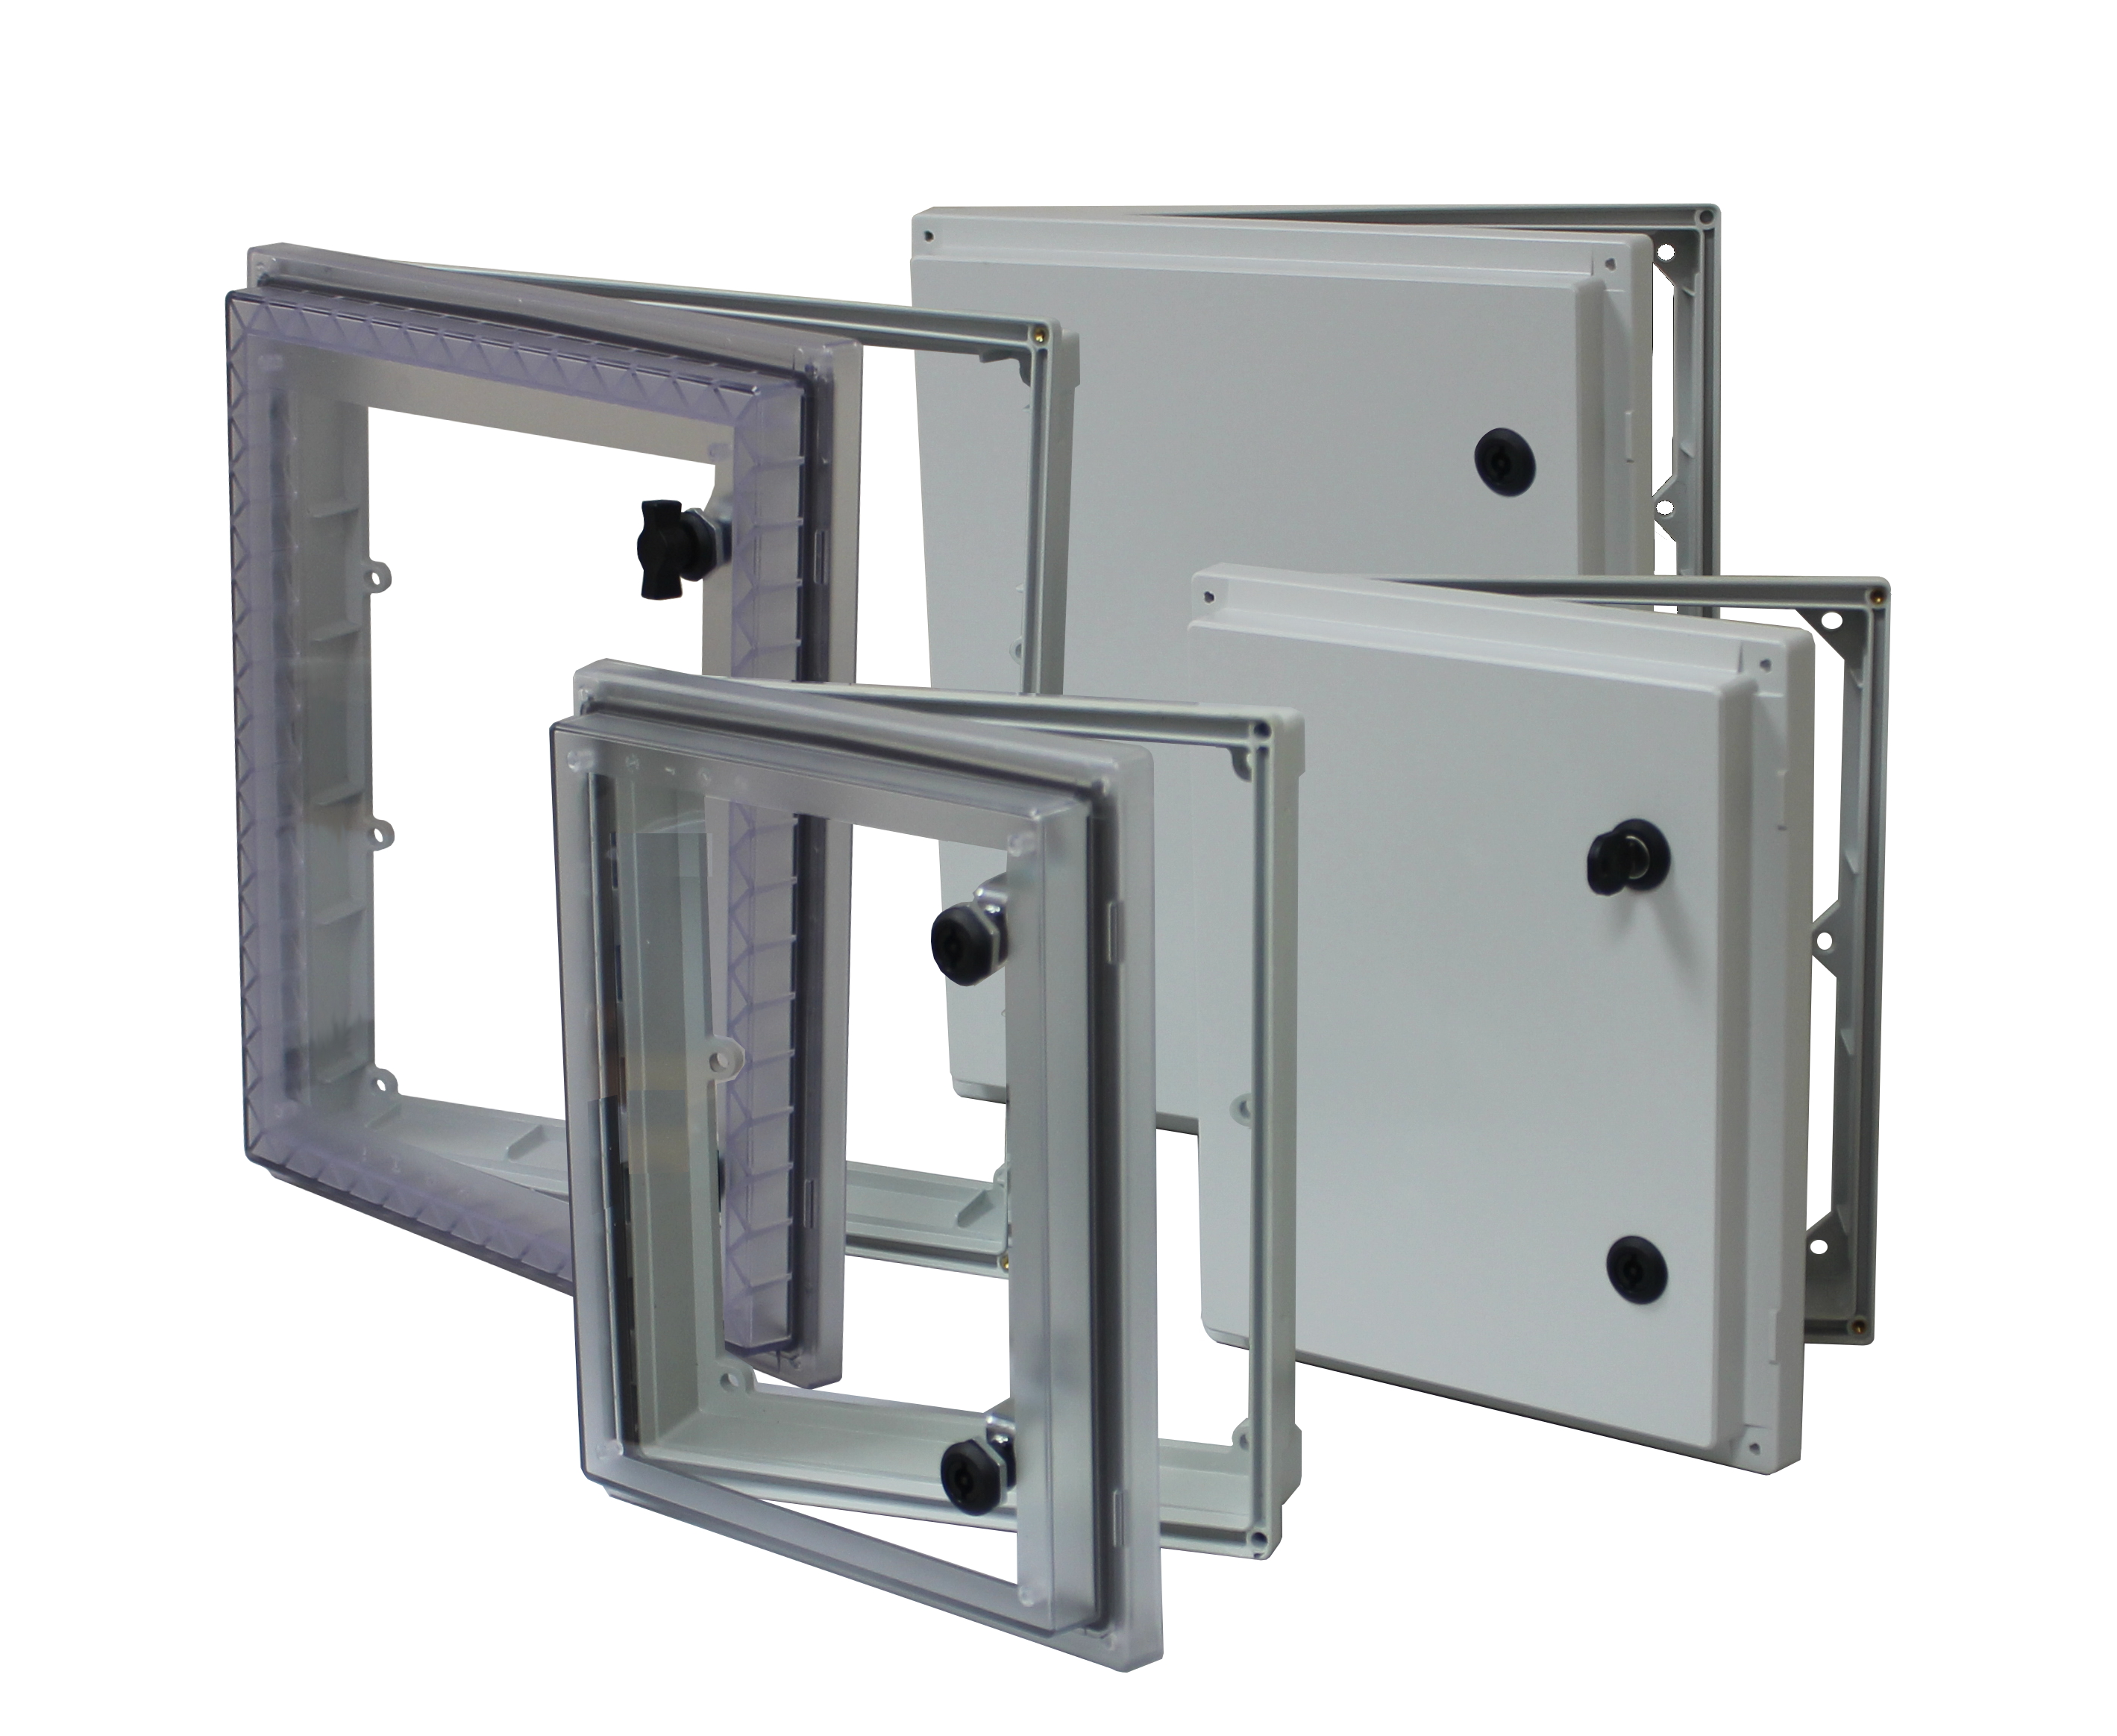 UL listed HMI cover sized 12x10 and 16x14 Opague or transparent